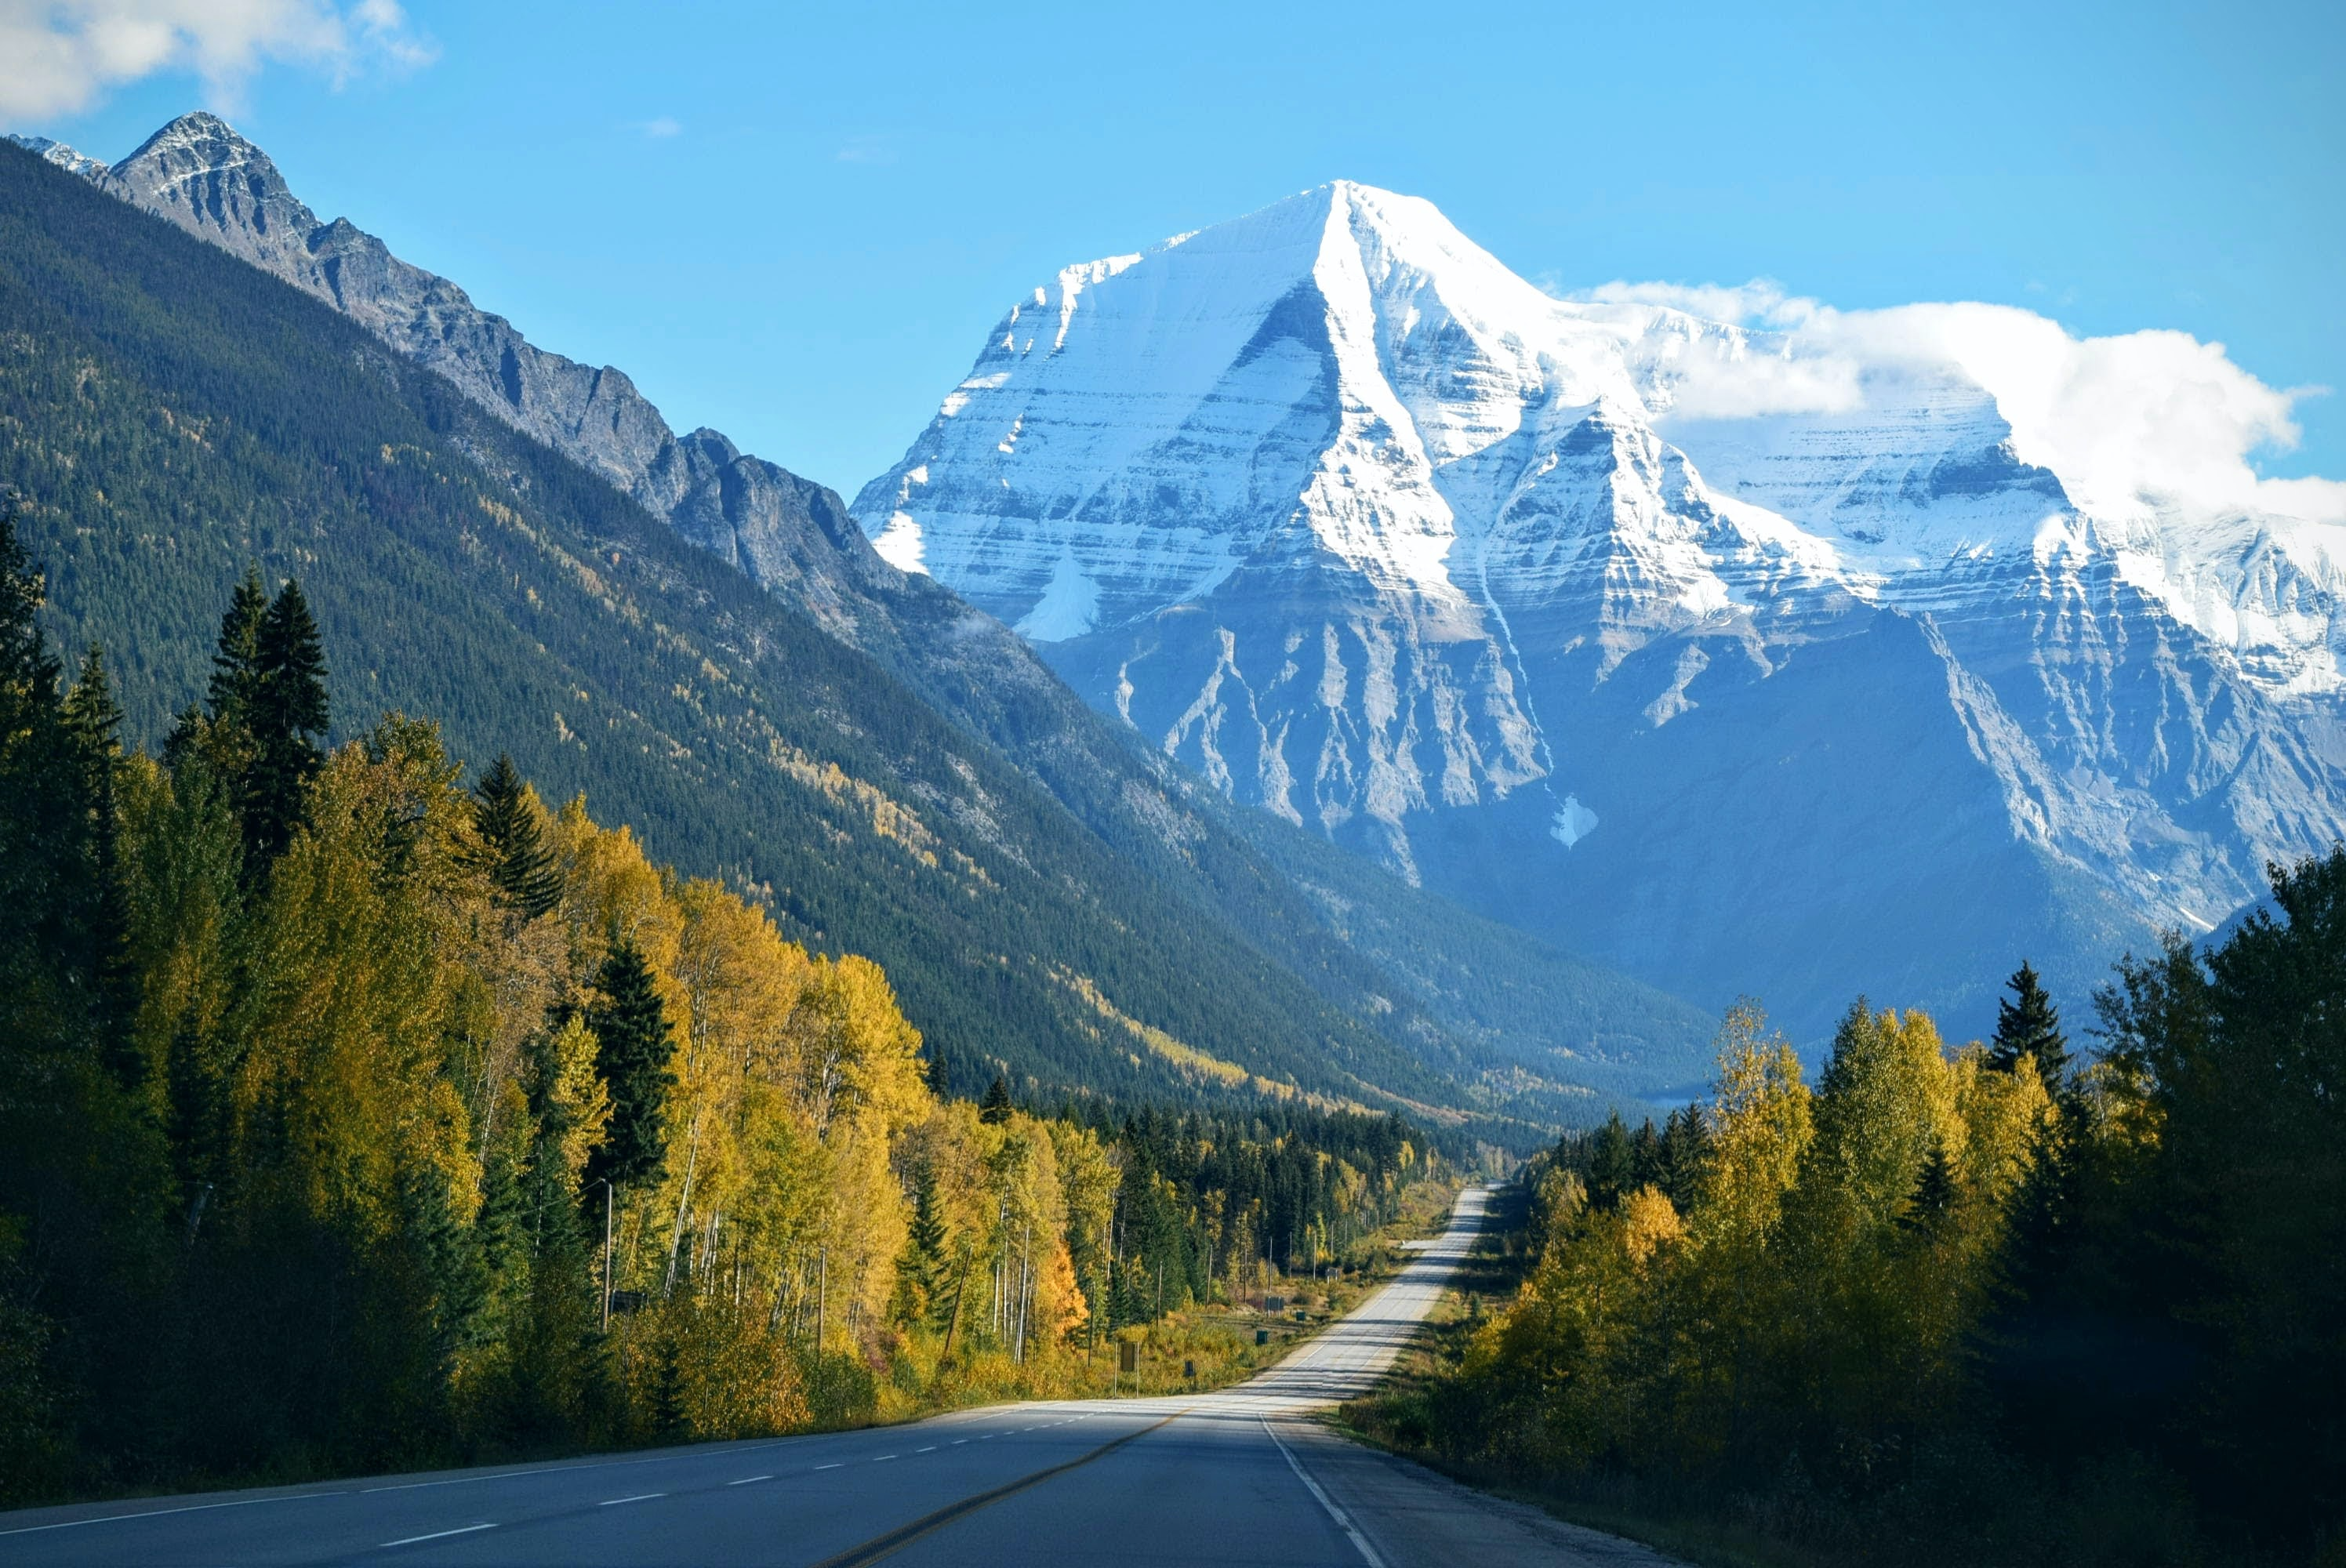 A road leading towards a snow covered mountain peaks surrounded by lush green forest and trees in Mount  Robson.